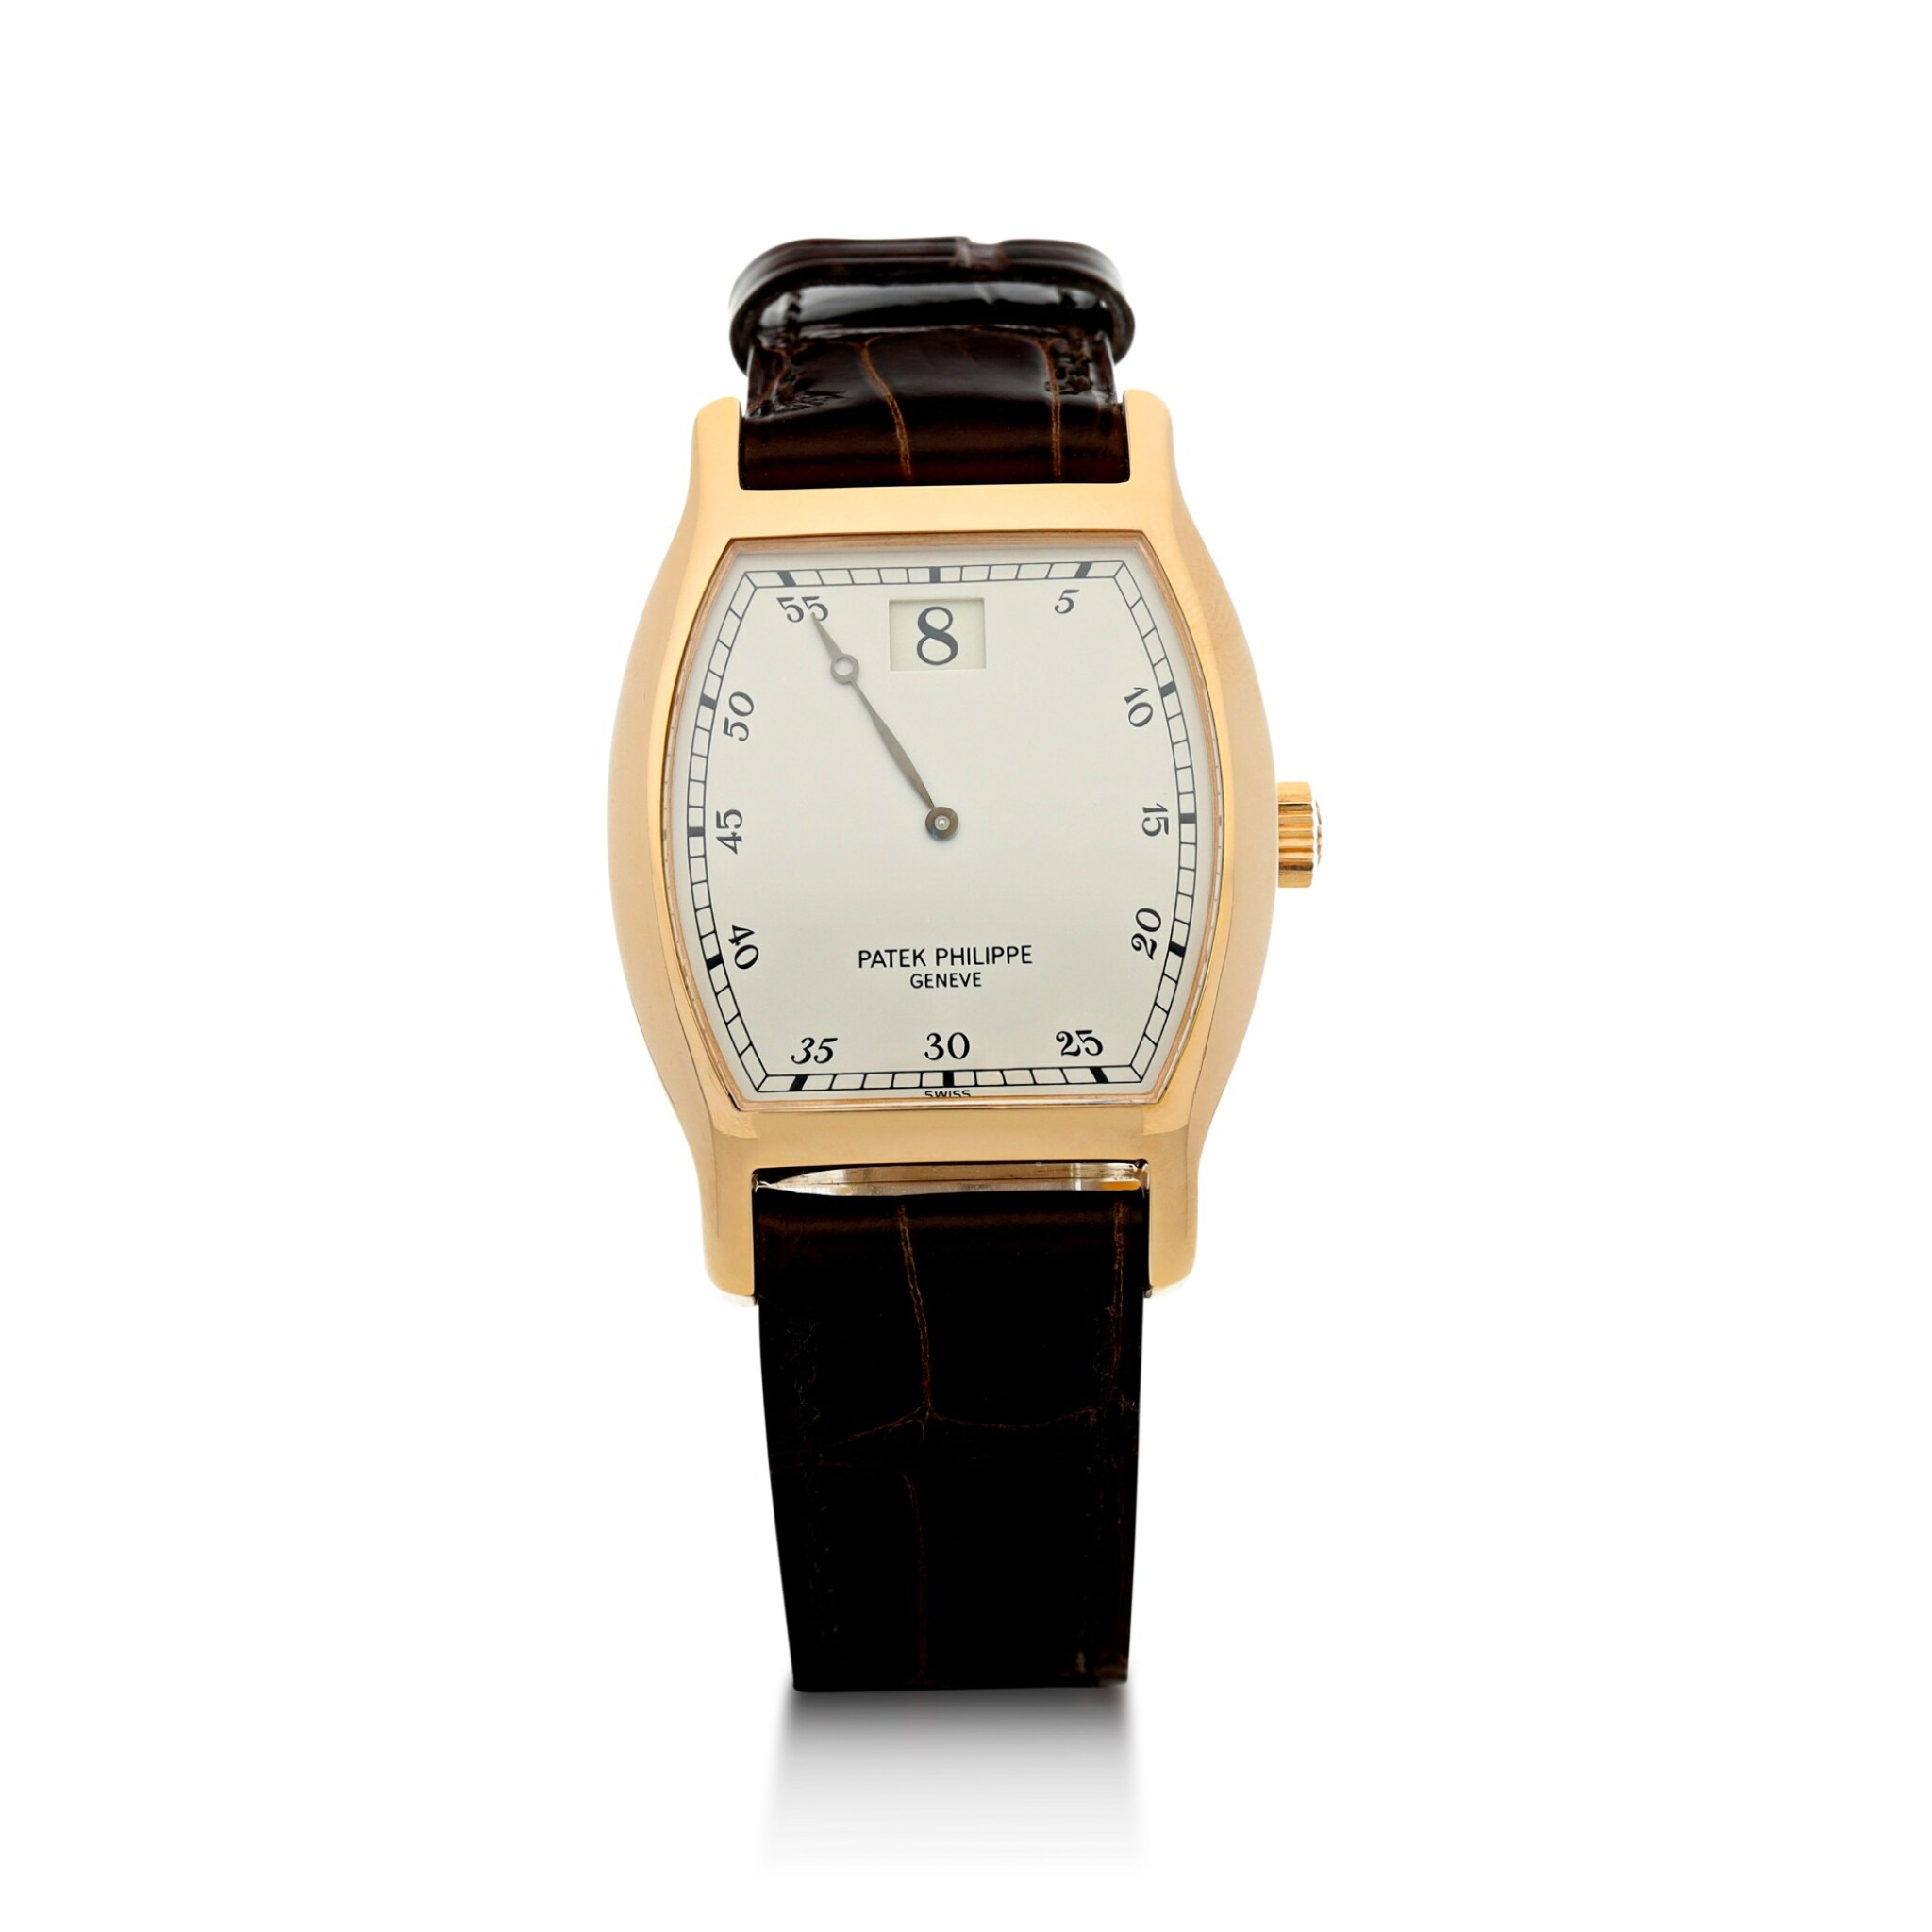 View full screen - View 1 of Lot 168. PATEK PHILIPPE   REFERENCE 3969  A LIMITED EDITION TONNEAU SHAPED PINK GOLD JUMP HOUR WRISTWATCH, MADE TO COMMEMORATE THE 150TH ANNIVERSARY OF PATEK PHILIPPE, MADE IN 1989.